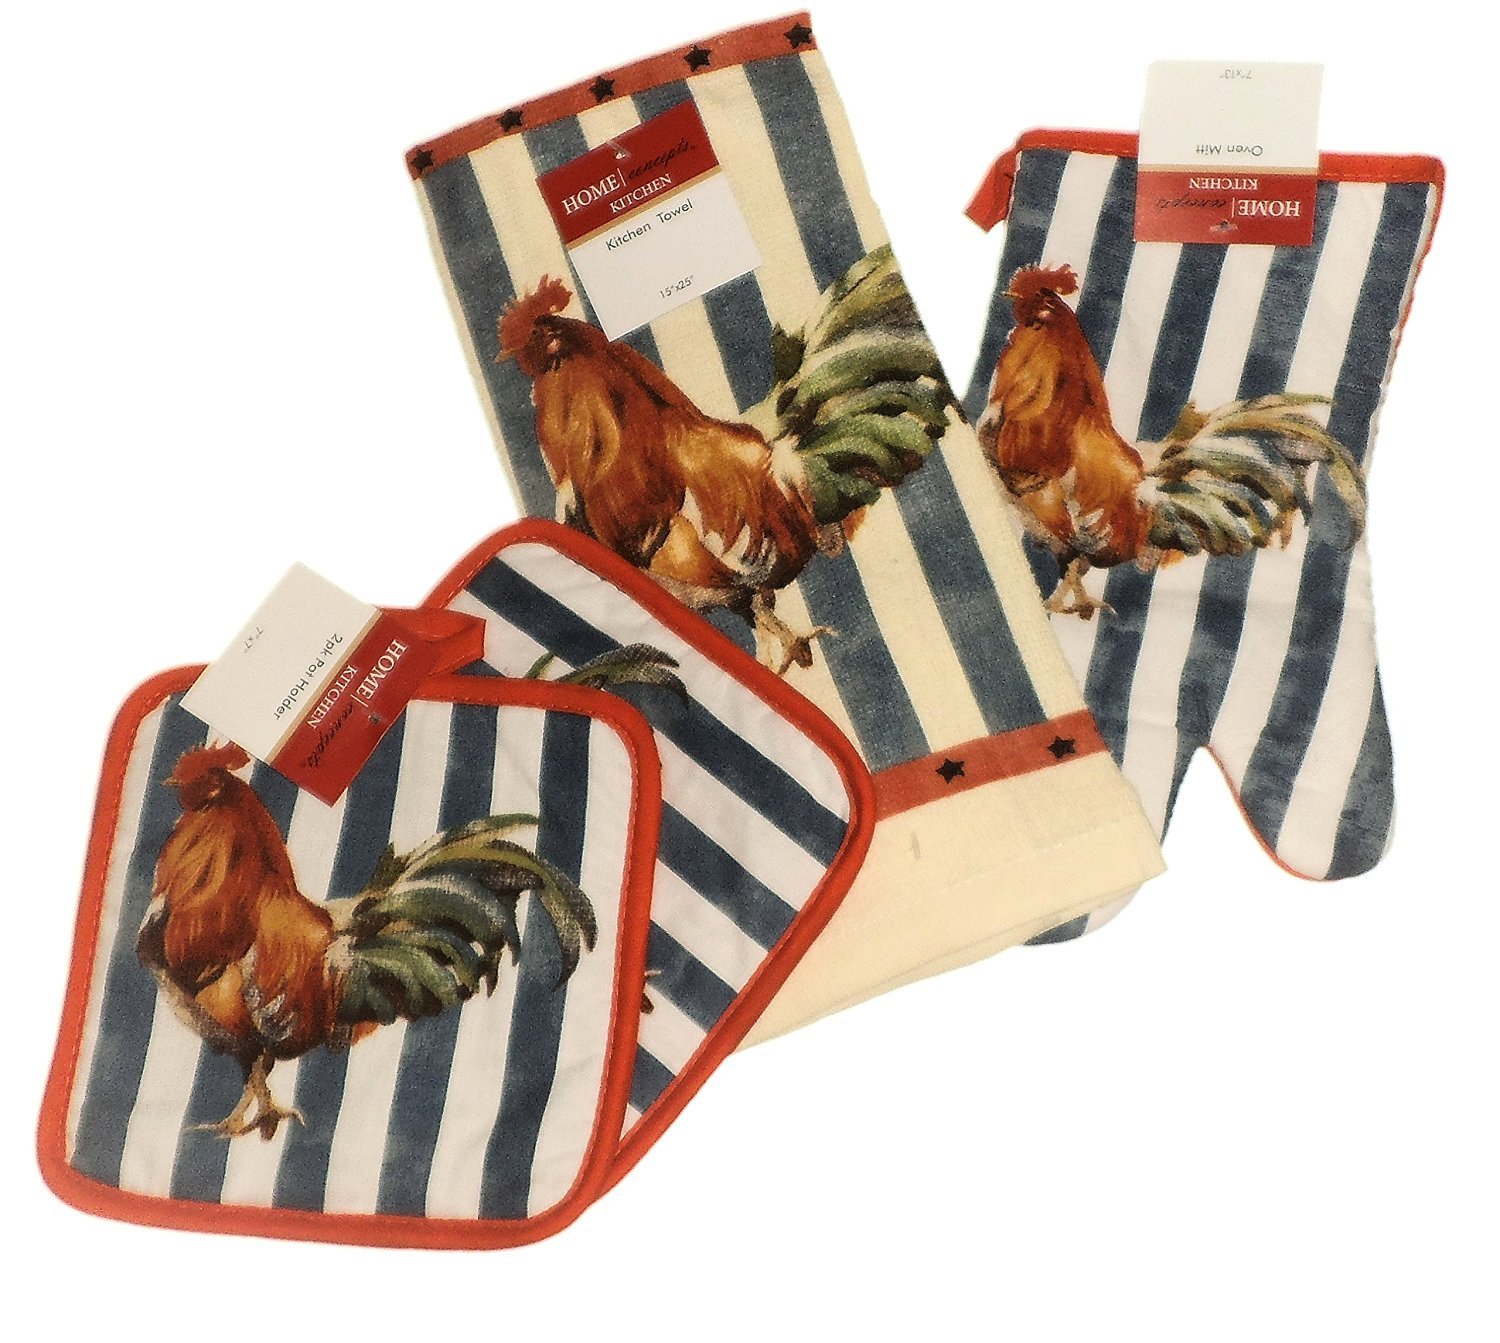 4 Piece Rooster Country Stripe Design Kitchen Set with 2 Potholders, 1 Oven Mitt & a Towel